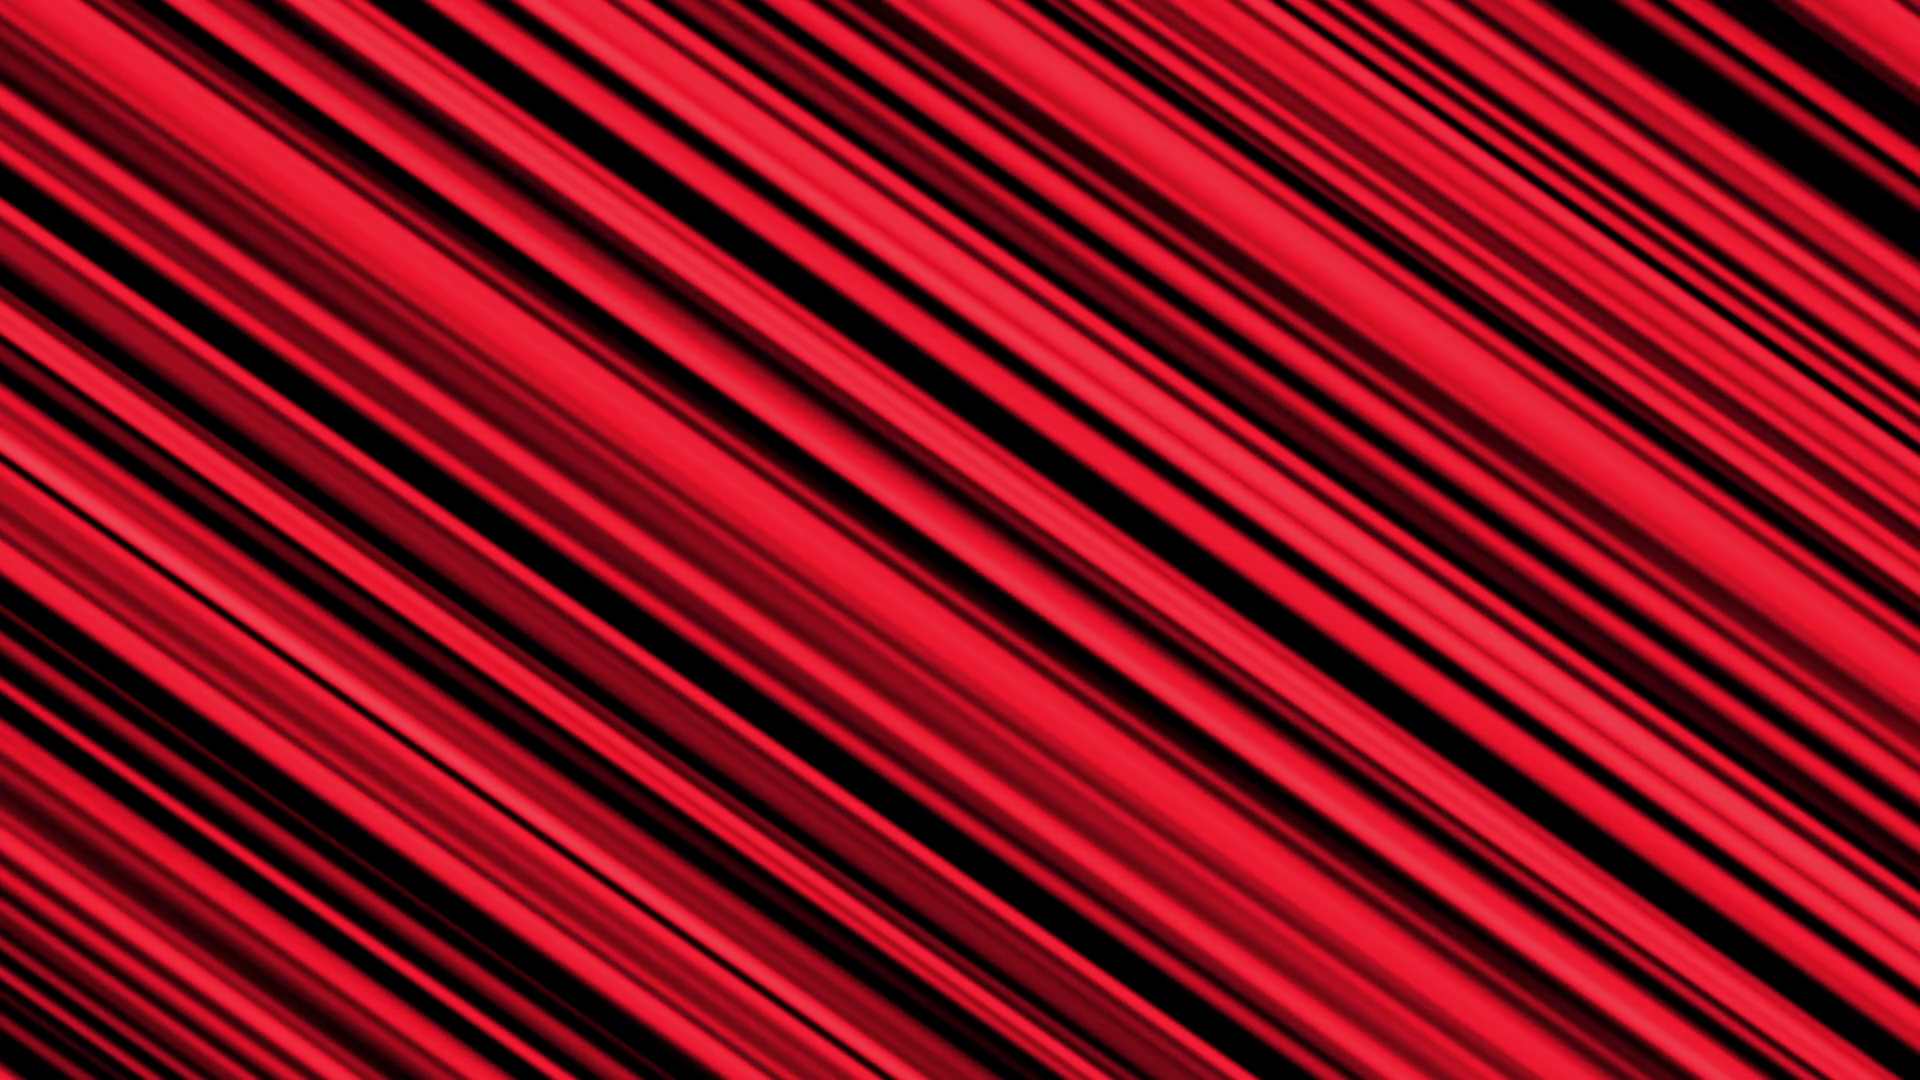 Diagonal Lines With Soft Edges Seamless Looping Motion ...